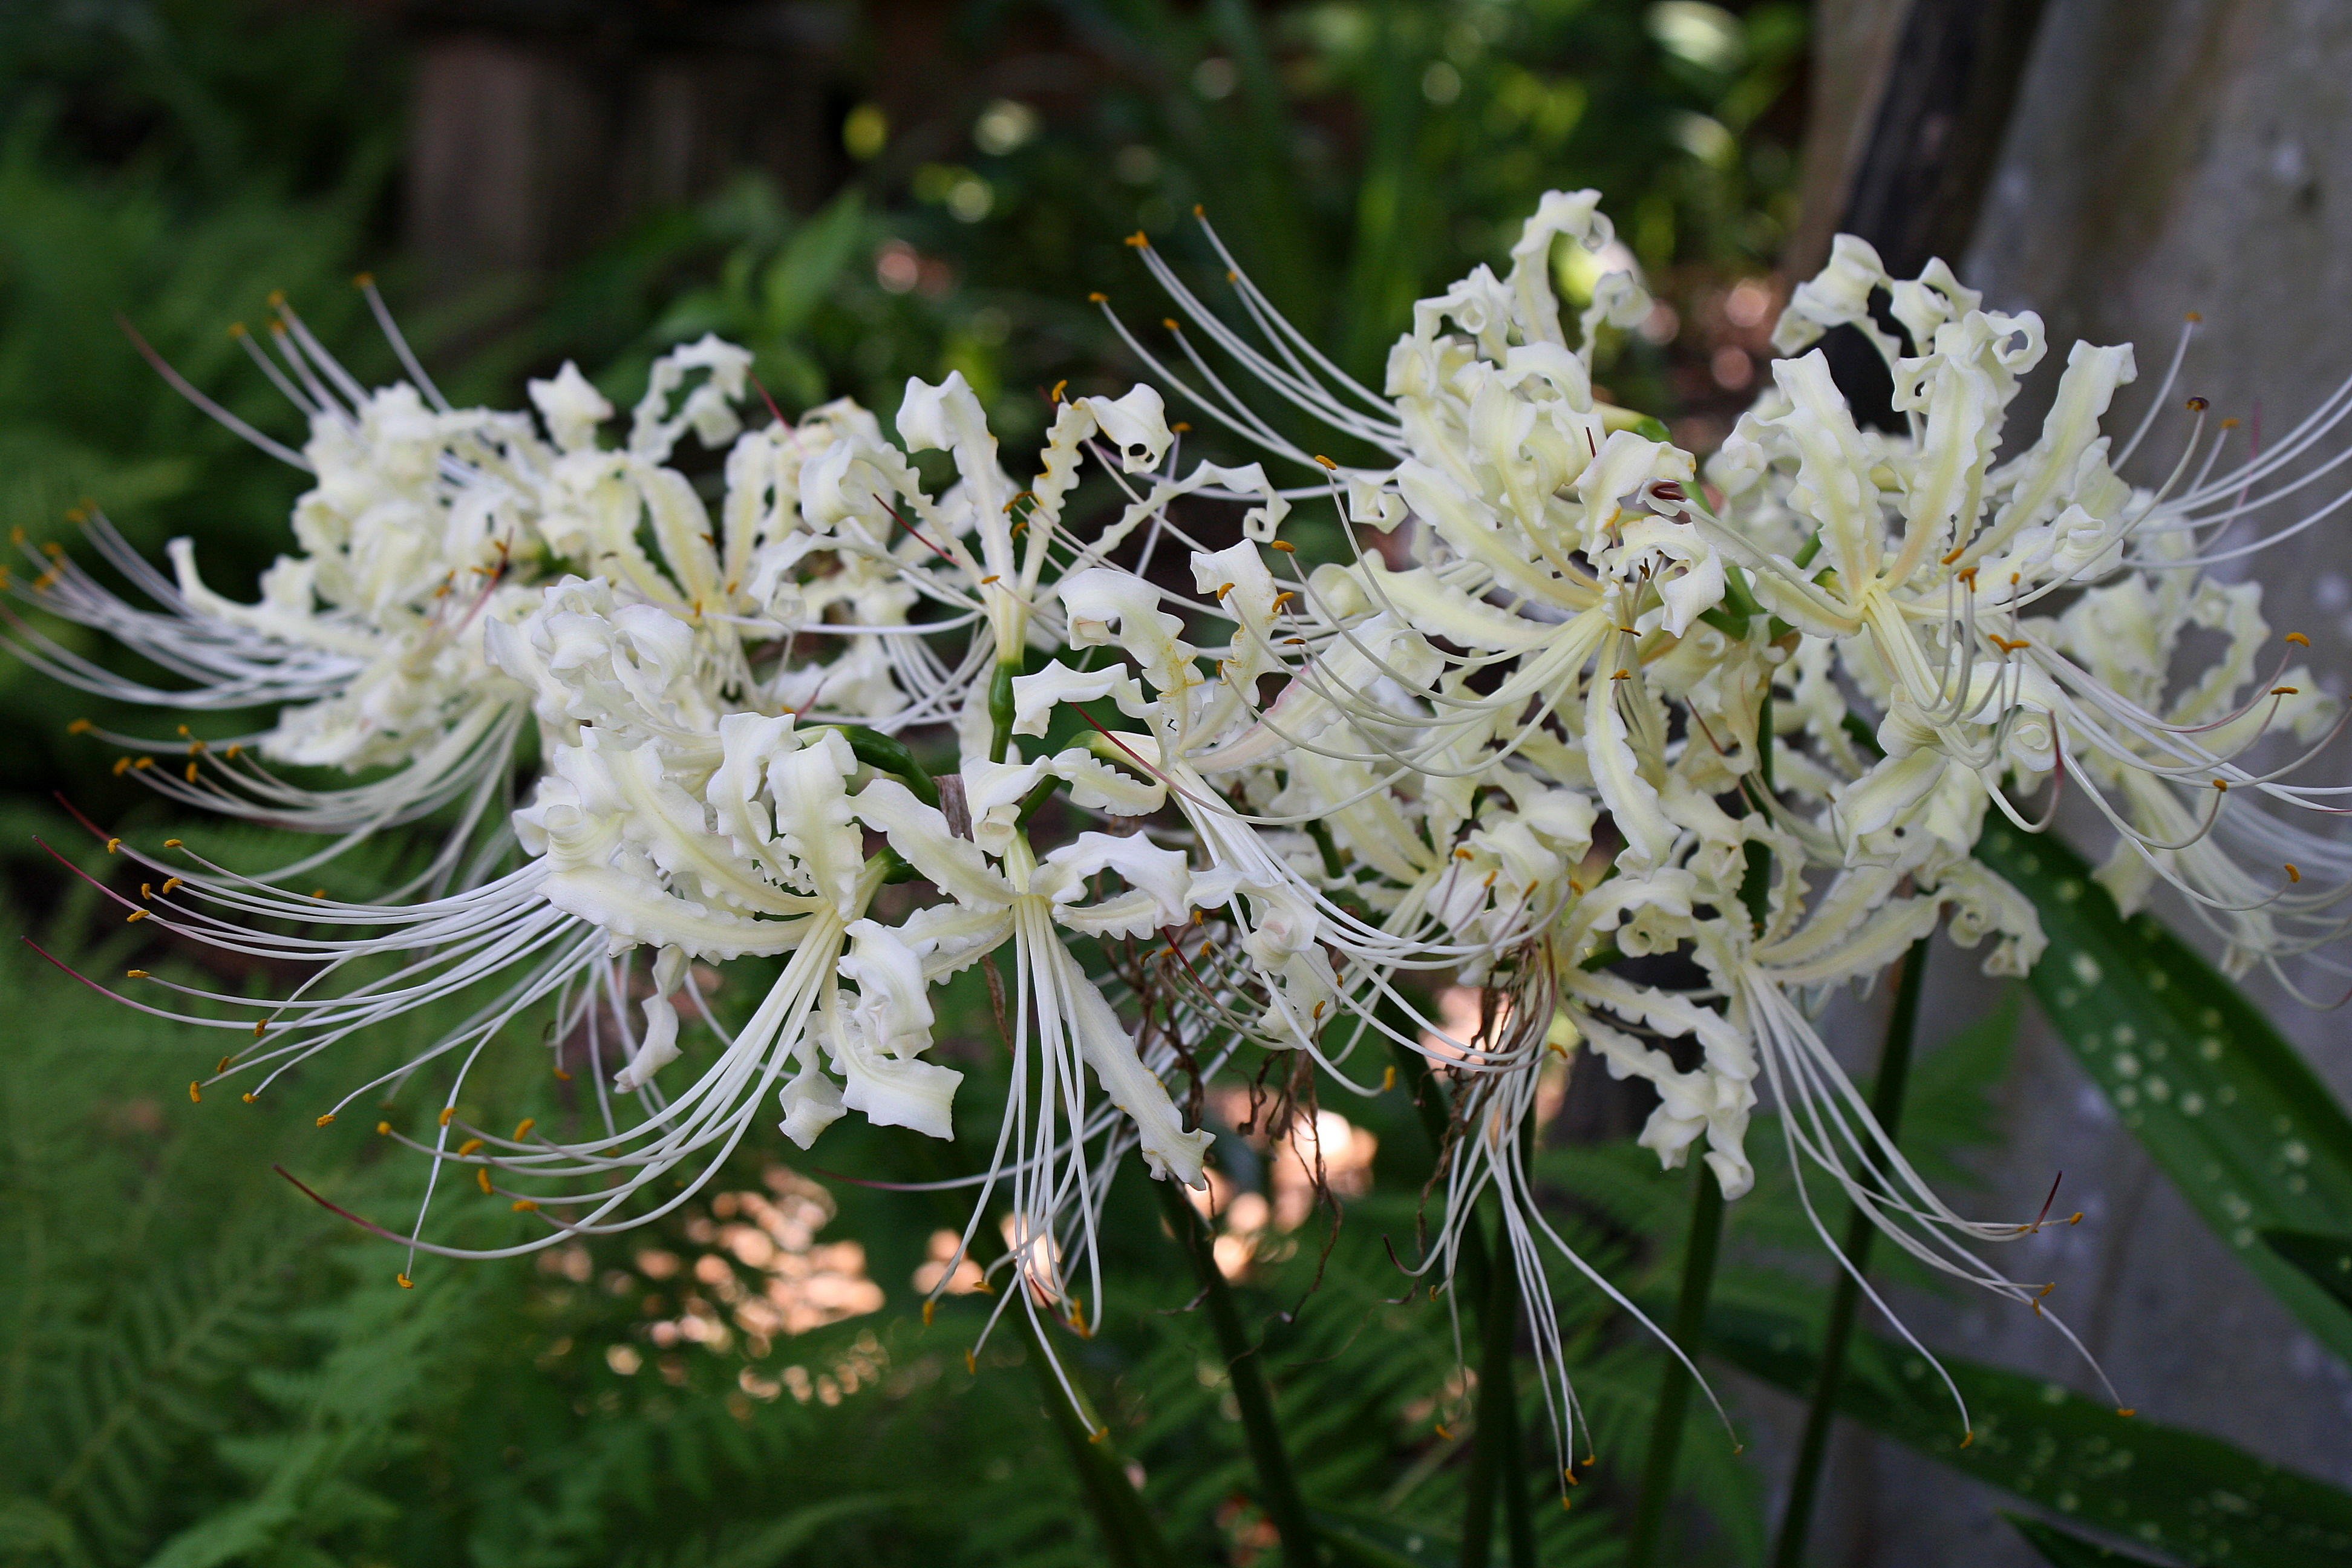 Lycoris x straminea 'Cream Frilling' @ JLBG - a PDN/JLBG selection from a Chinese Nursery bulb import - flower color at maturity